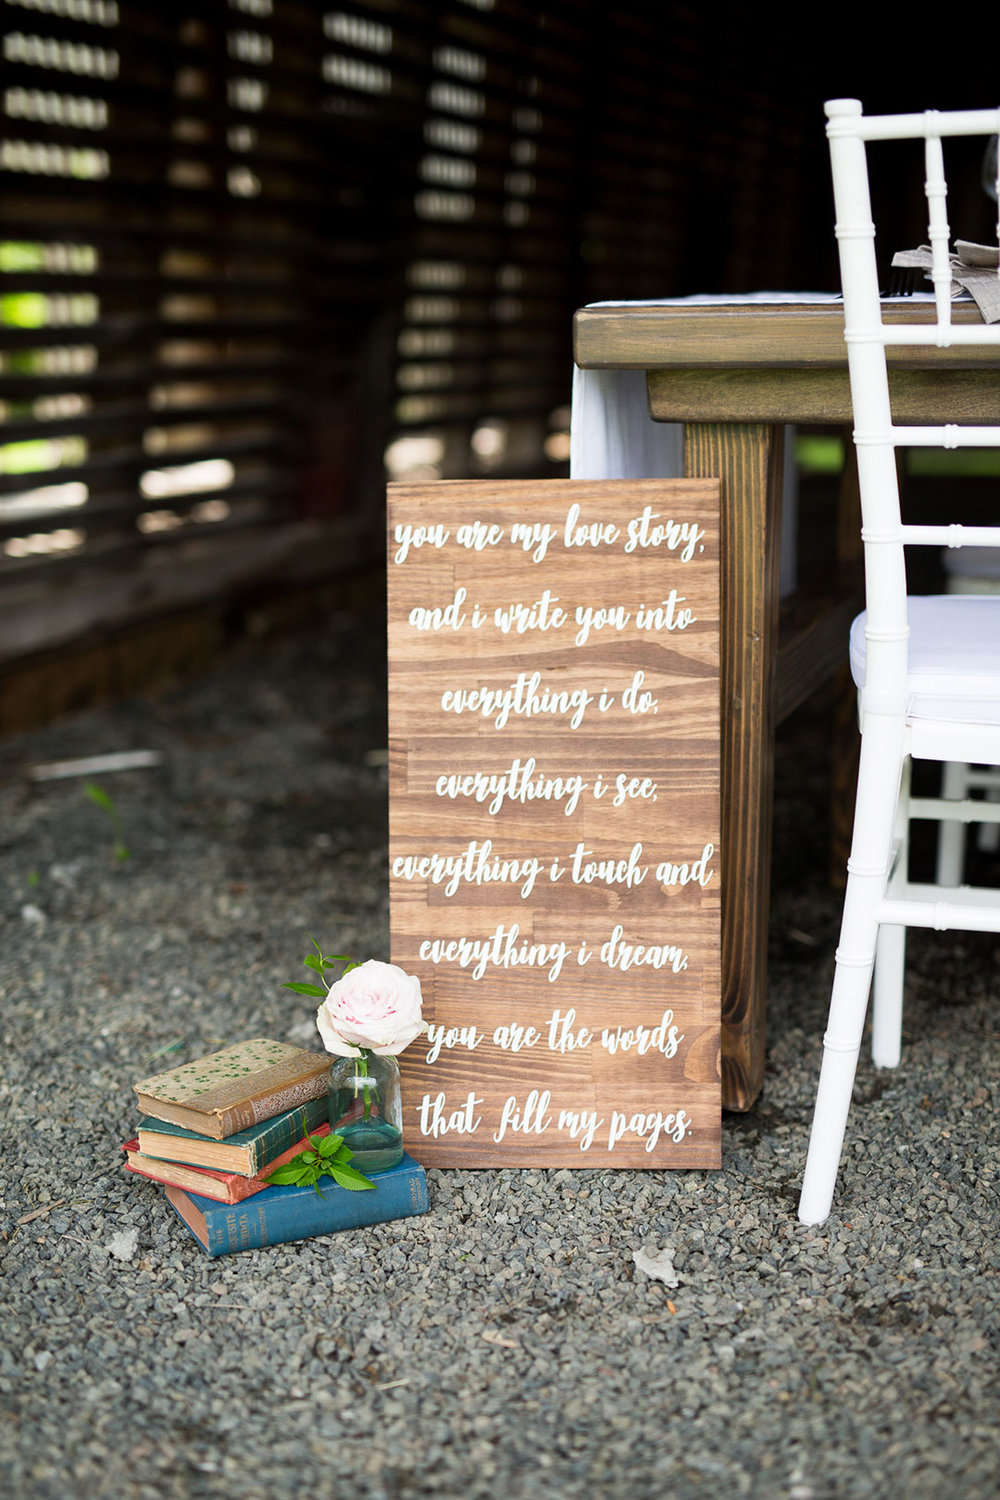 2I2A1214.jpgRustic Barn Wedding Inspiration Princeton New Jersey